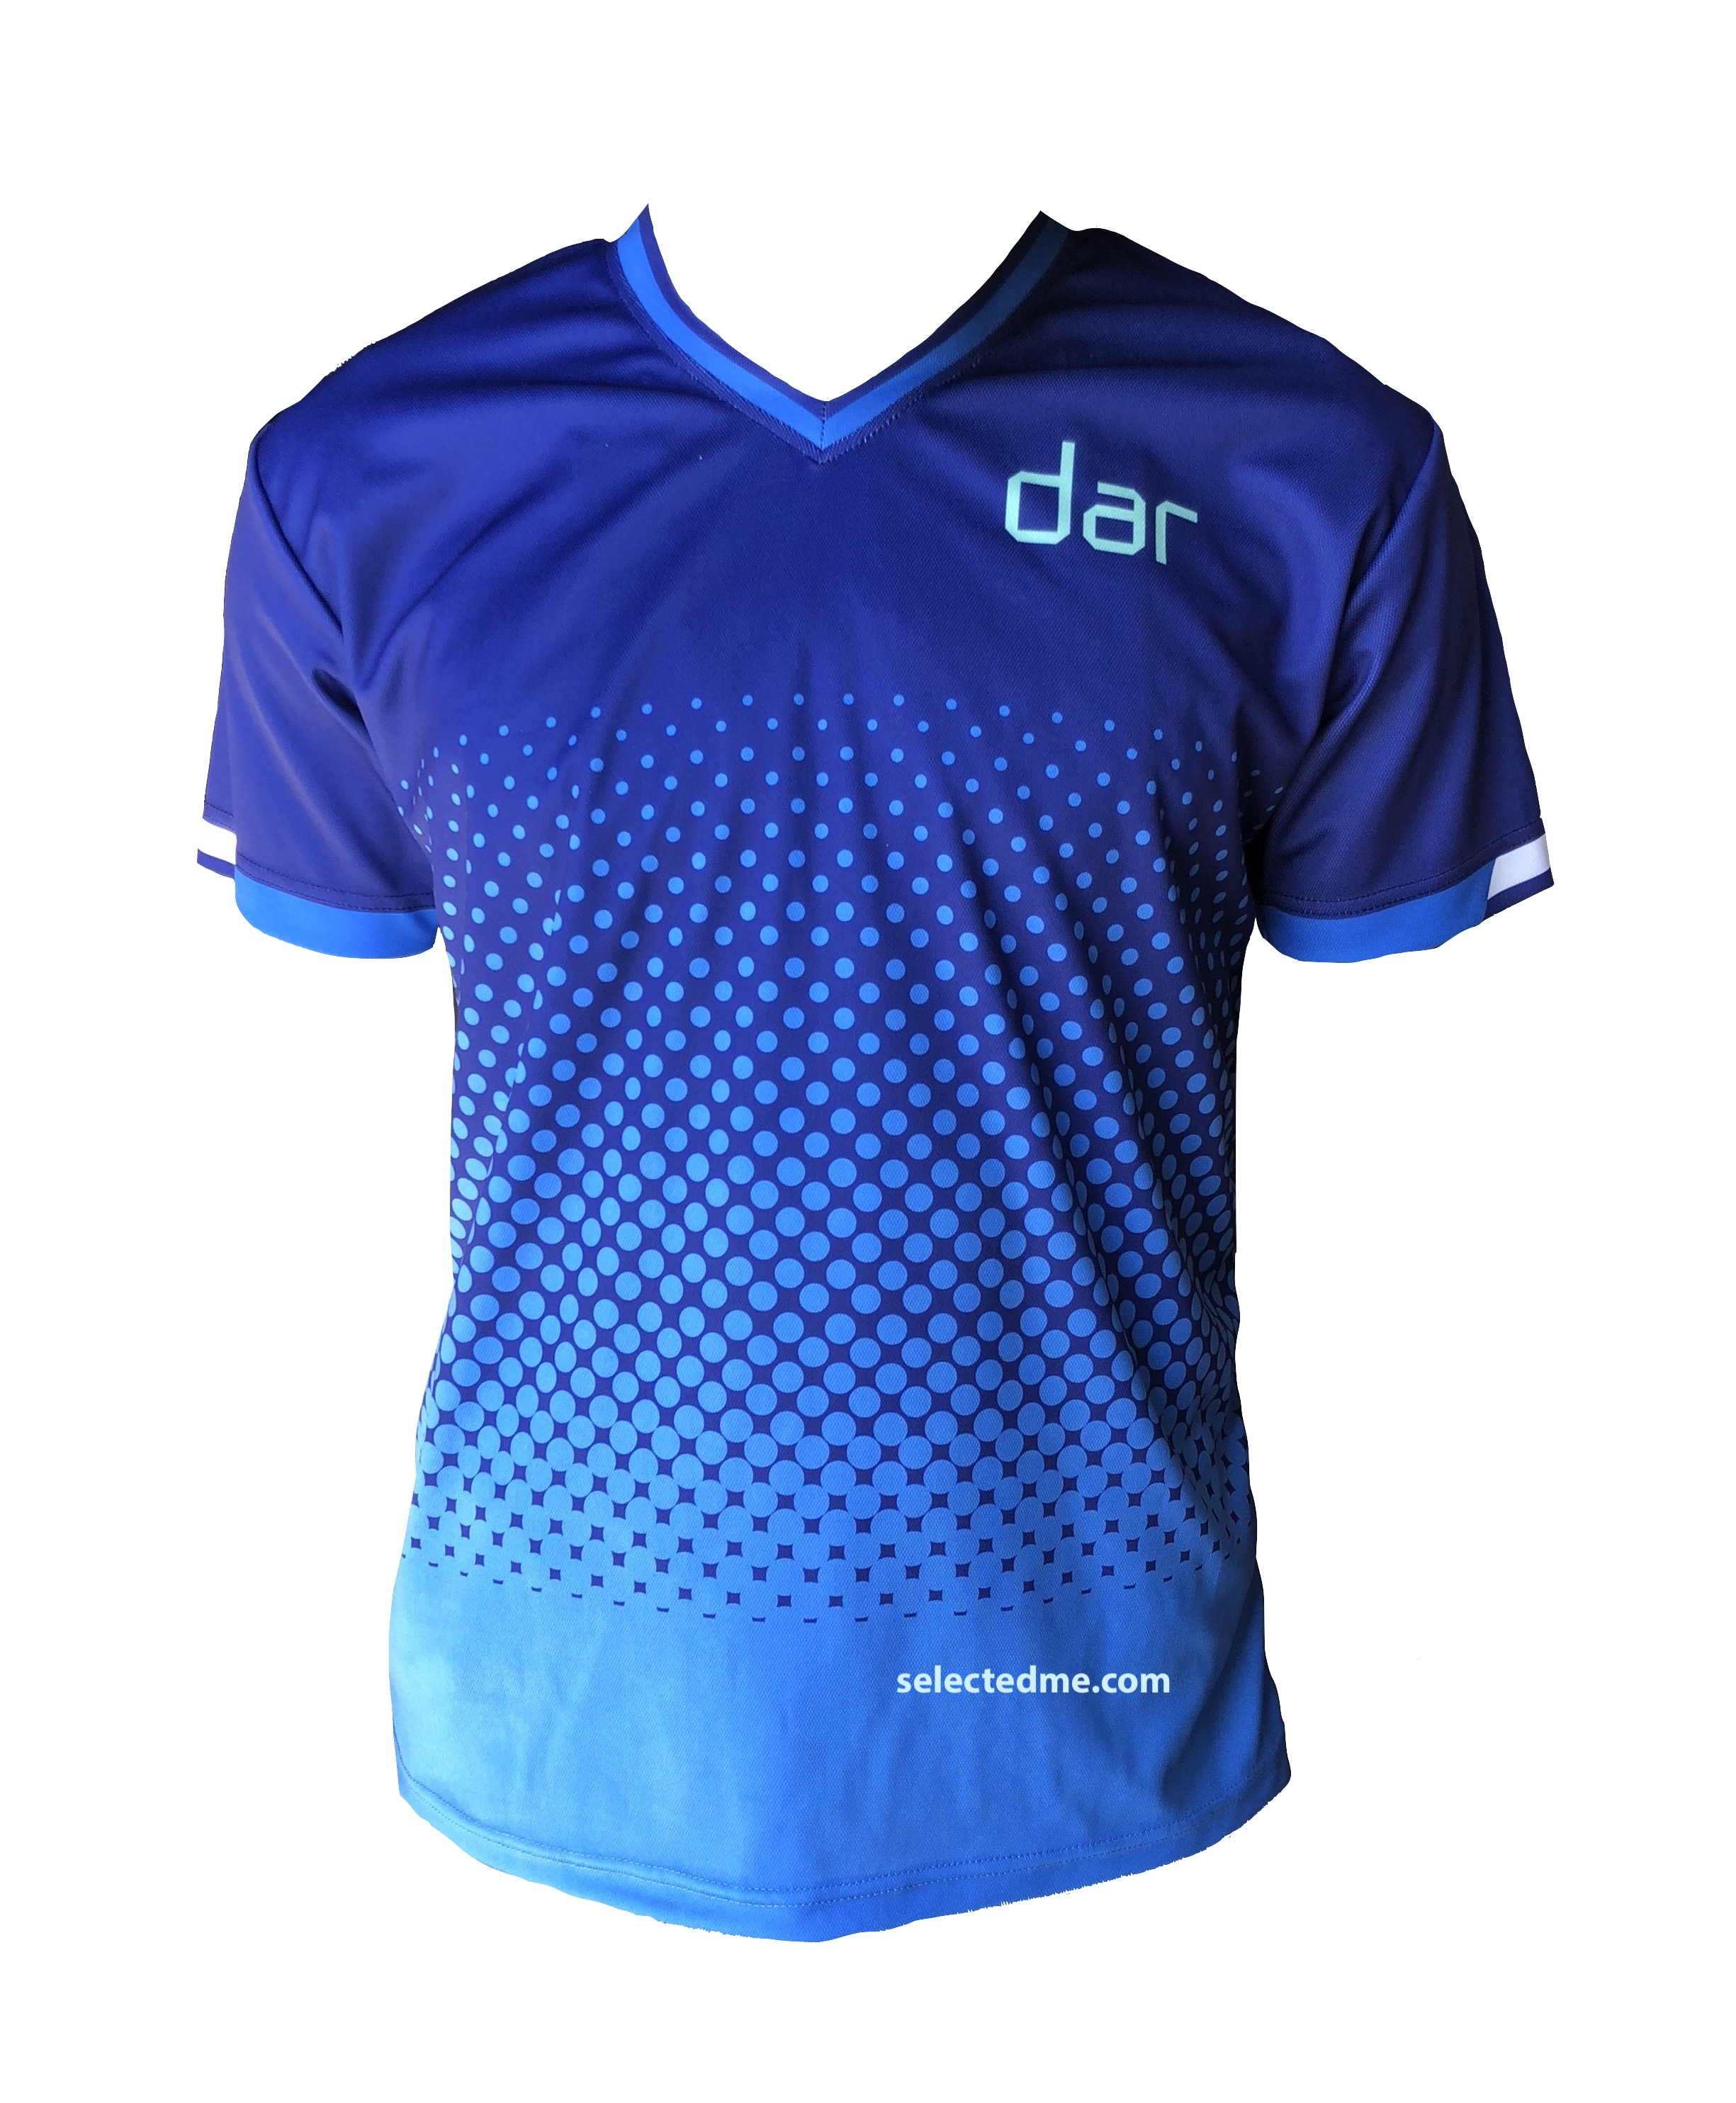 Team Uniforms - Digital Printed Jerseys, Sublimated Jerseys